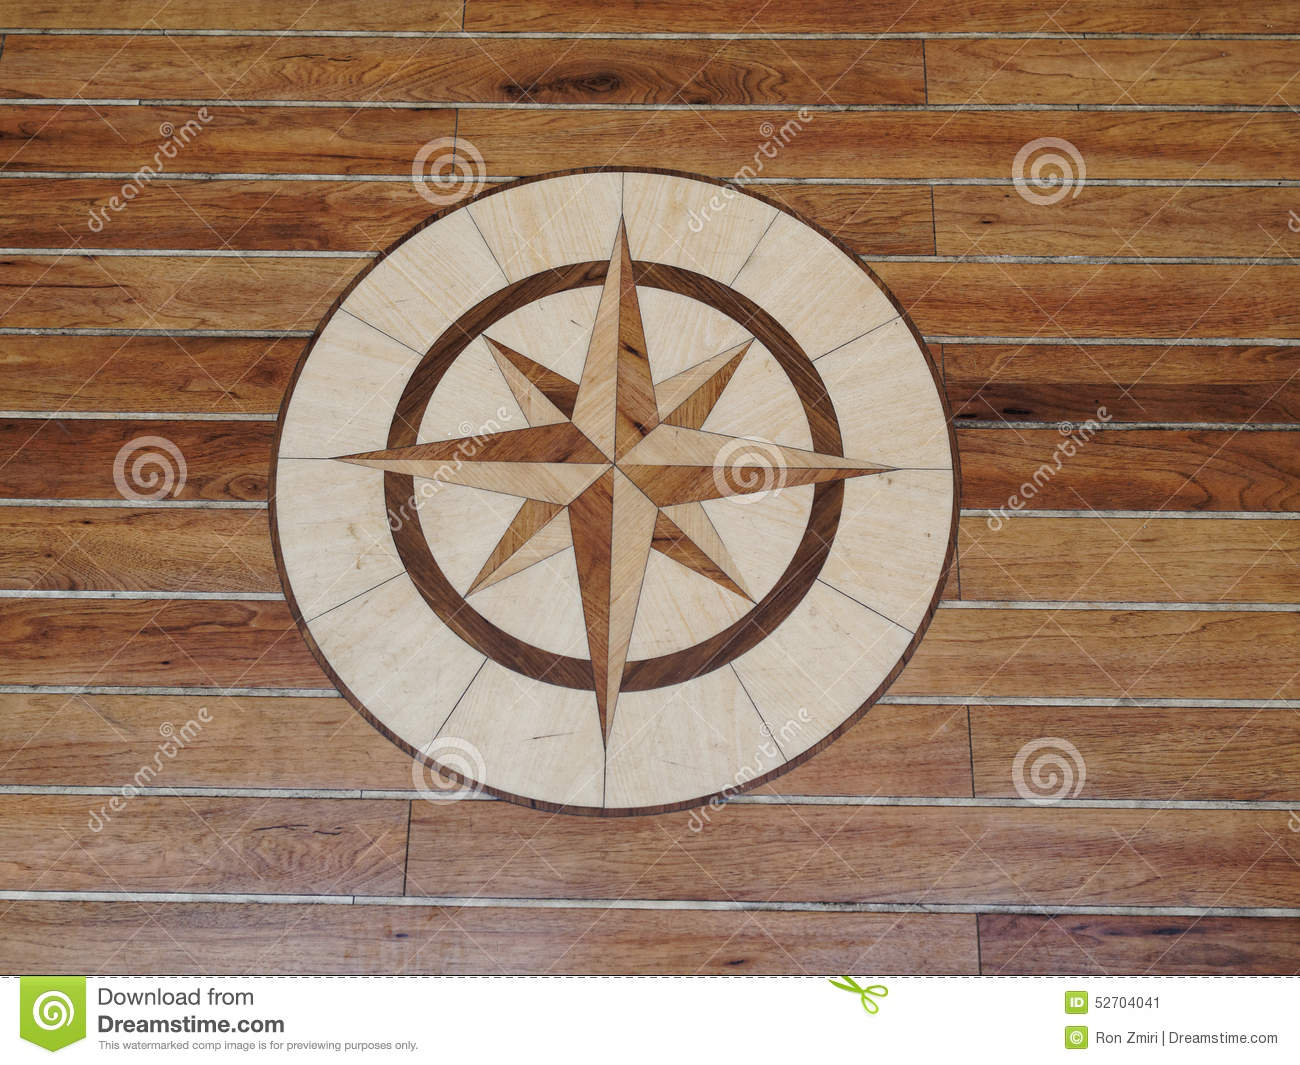 High Quality Wooden Floor Of A Sailing Boat Stock Photo - Image ...